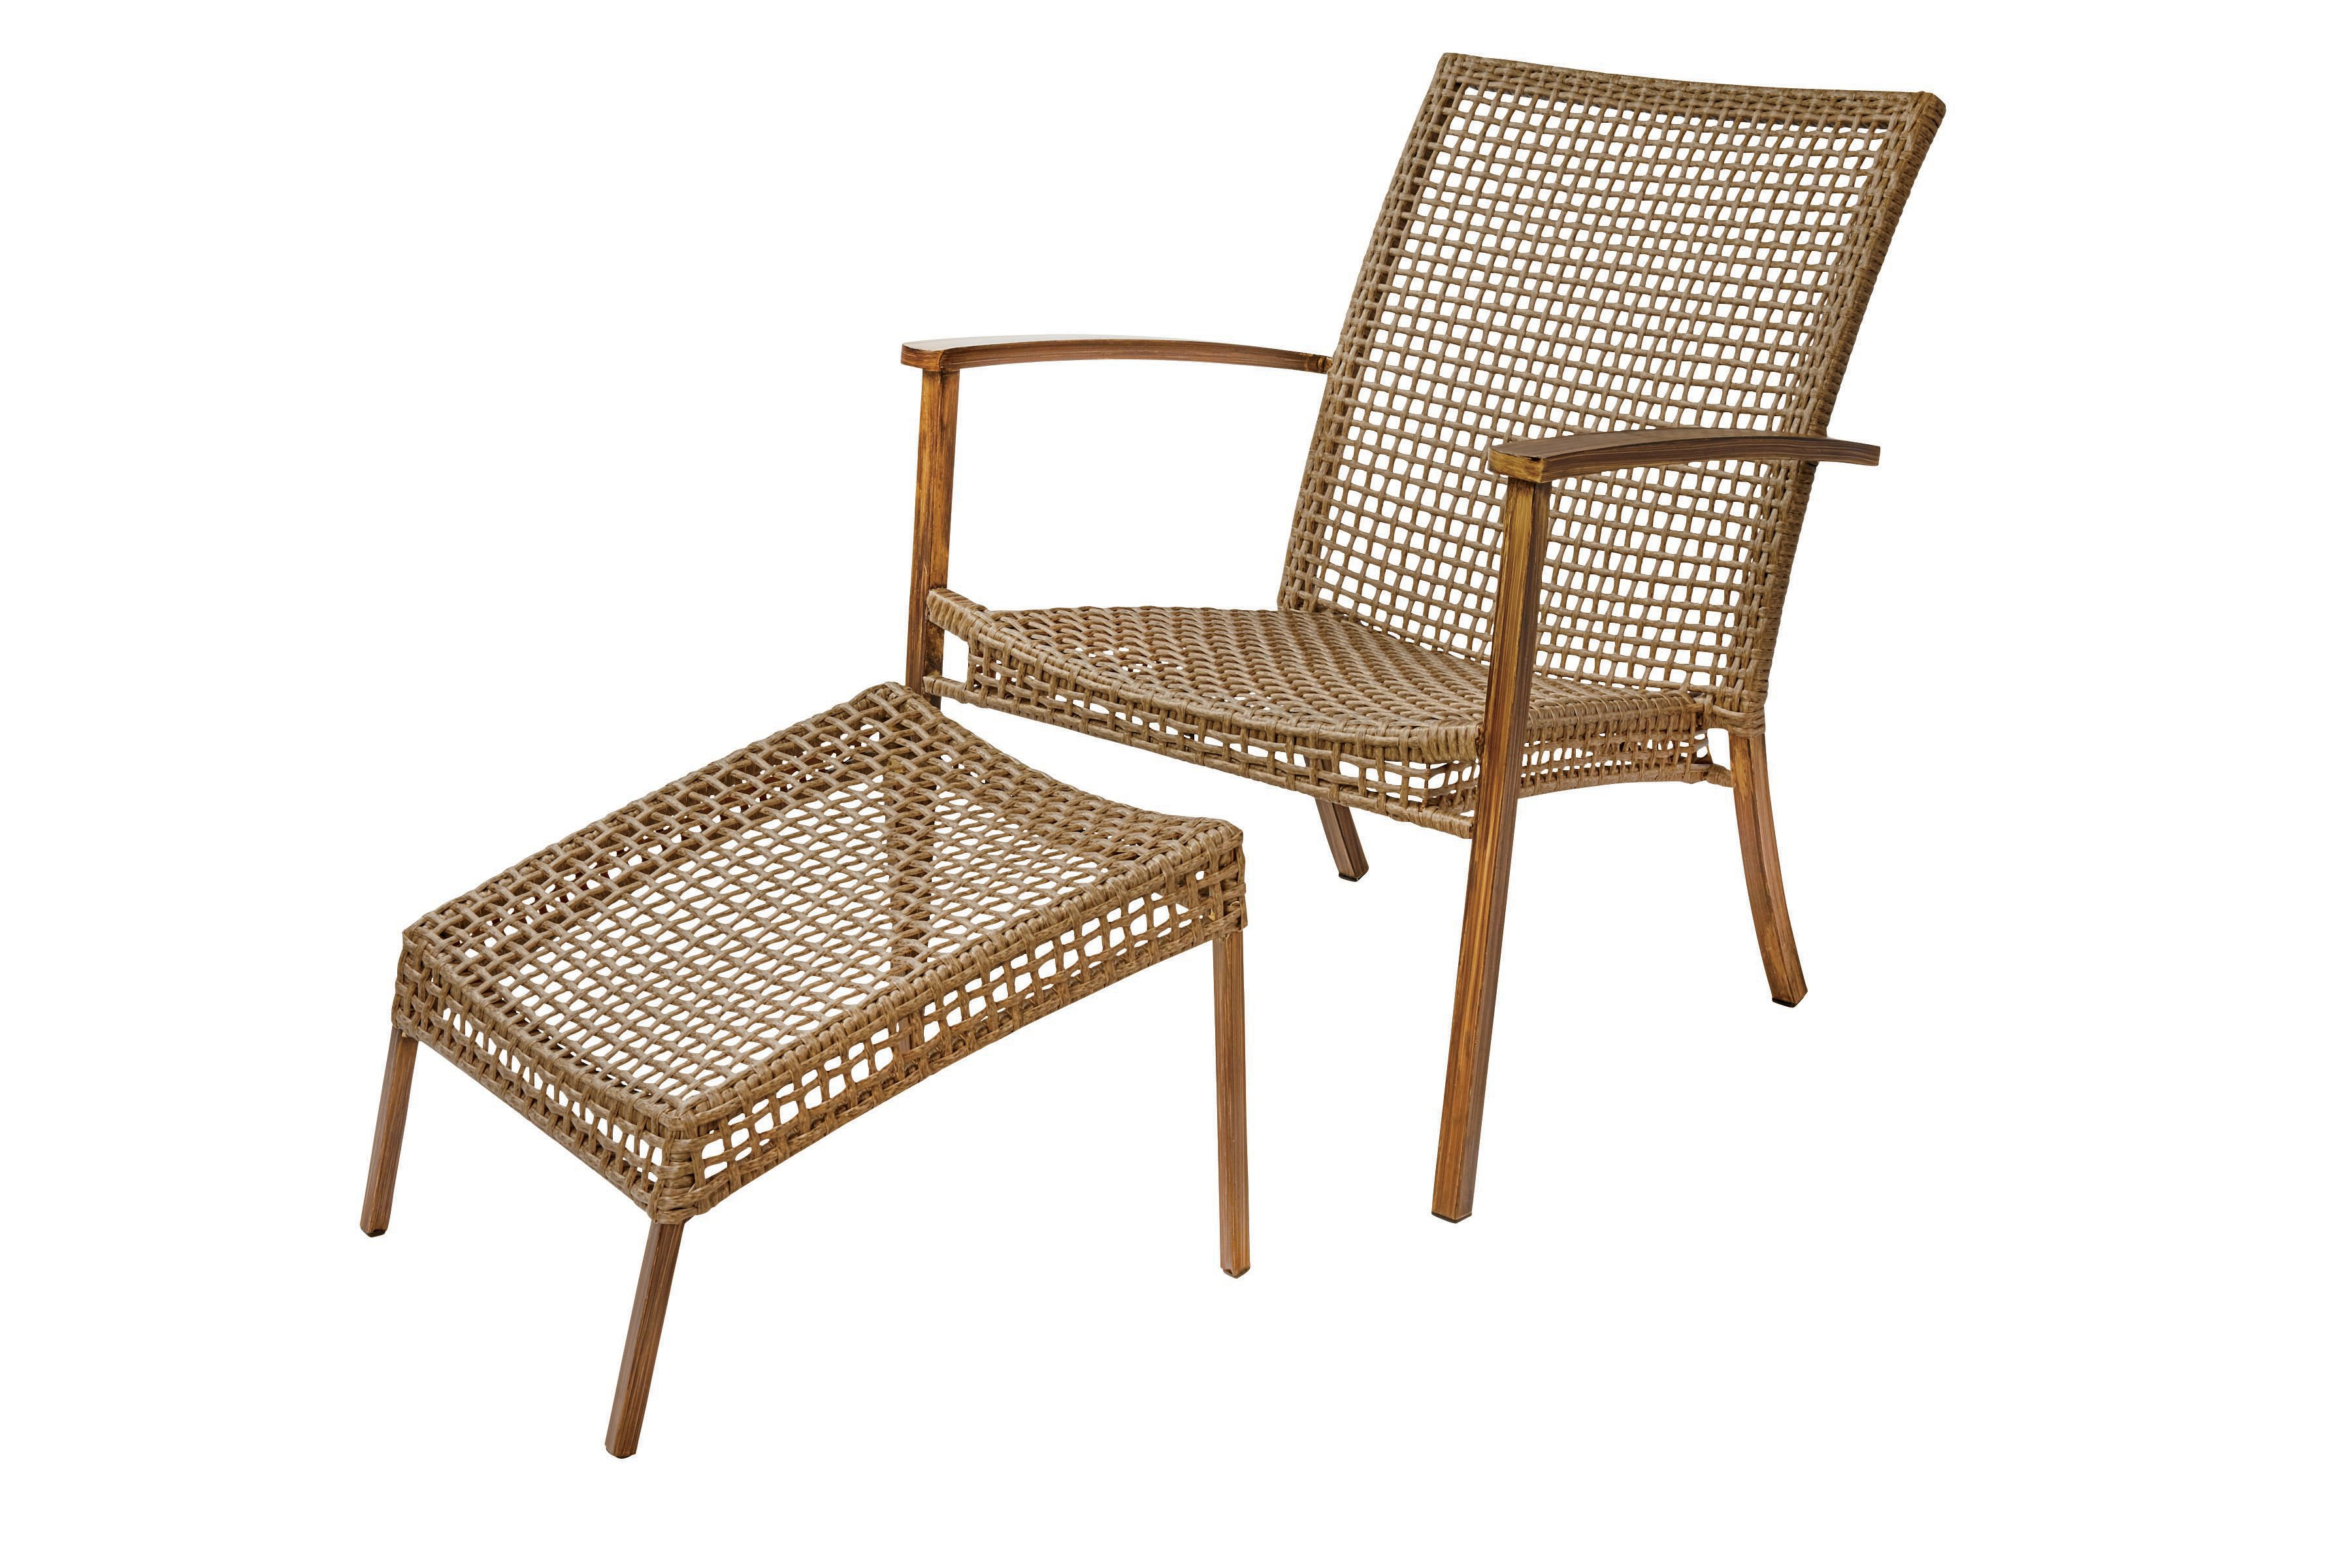 Zest Garden Holbrook Chair And Ottoman Set Shop Furniture at HEB